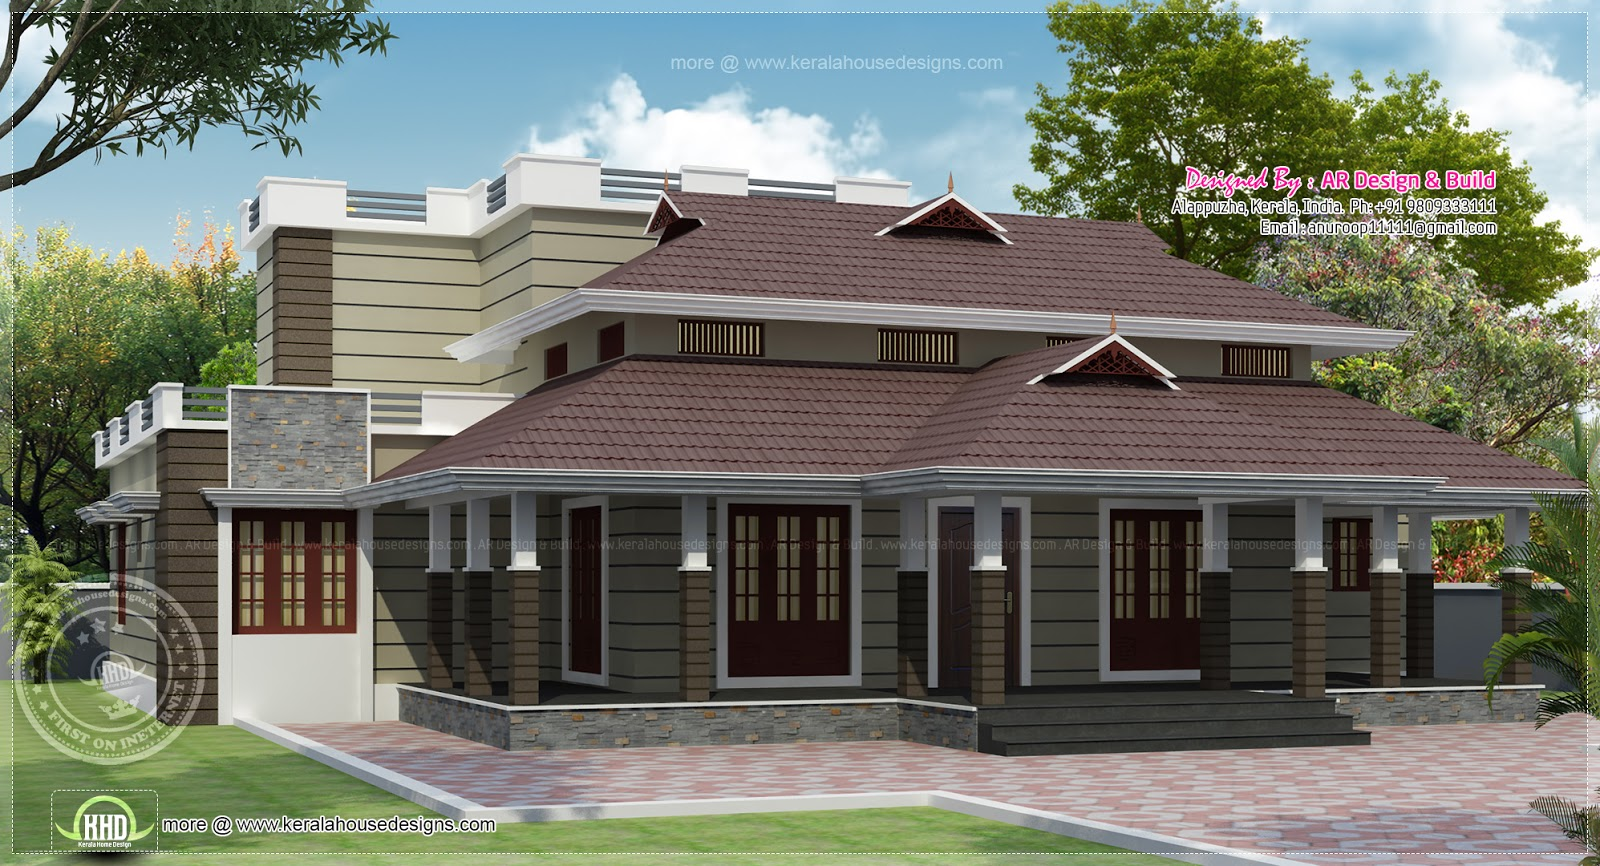 Nalukettu Kerala House In 2730 Sq Ft Home Design Ideas